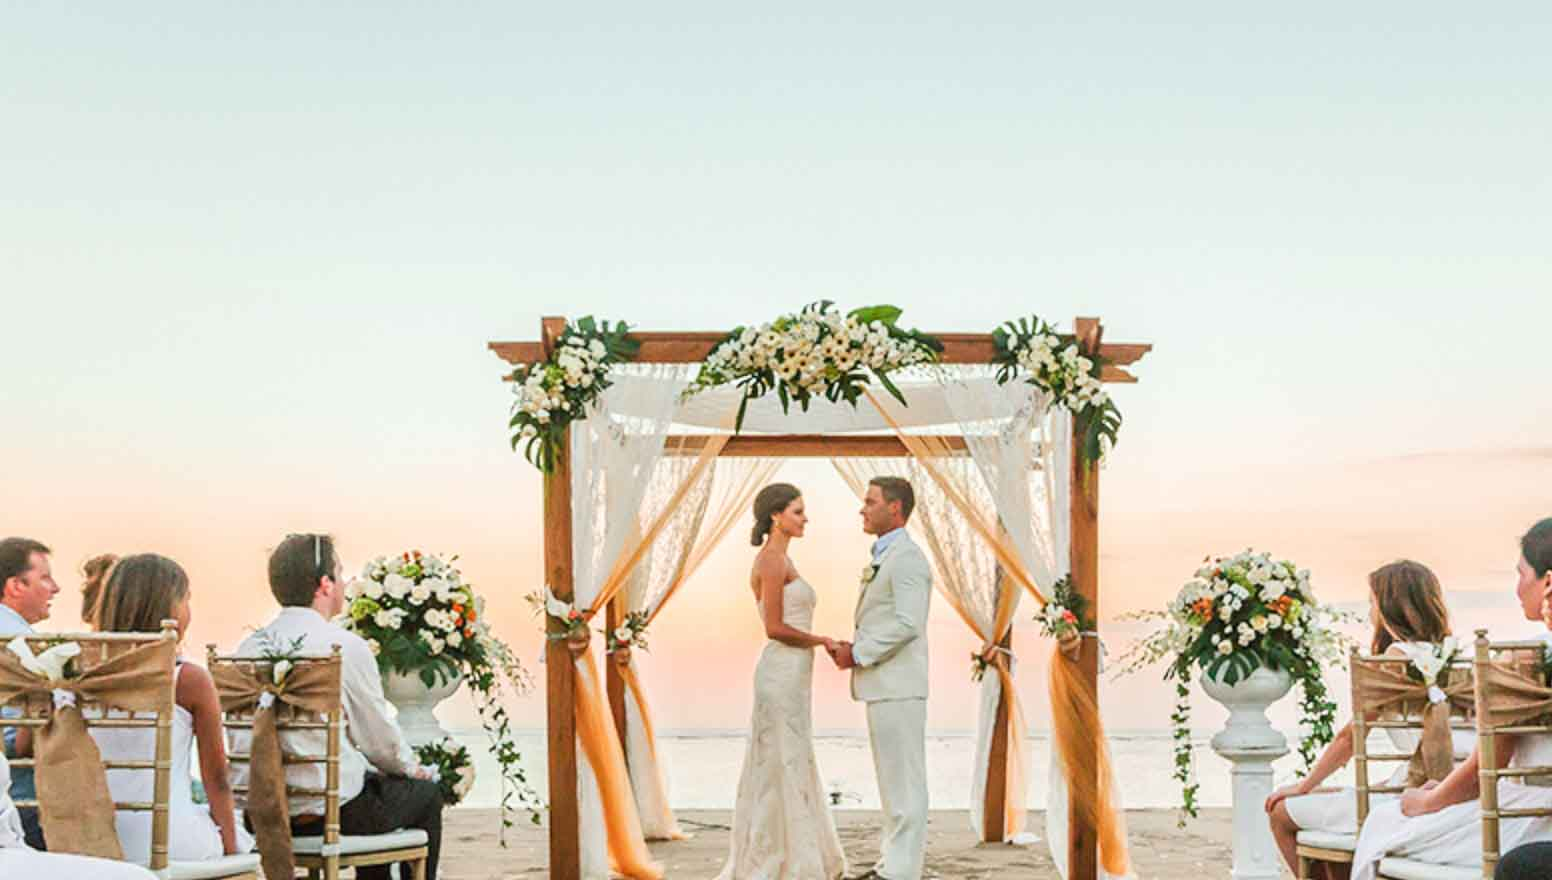 Ma Joly Sunset Beach Wedding Venue (30 - 100 Pax)